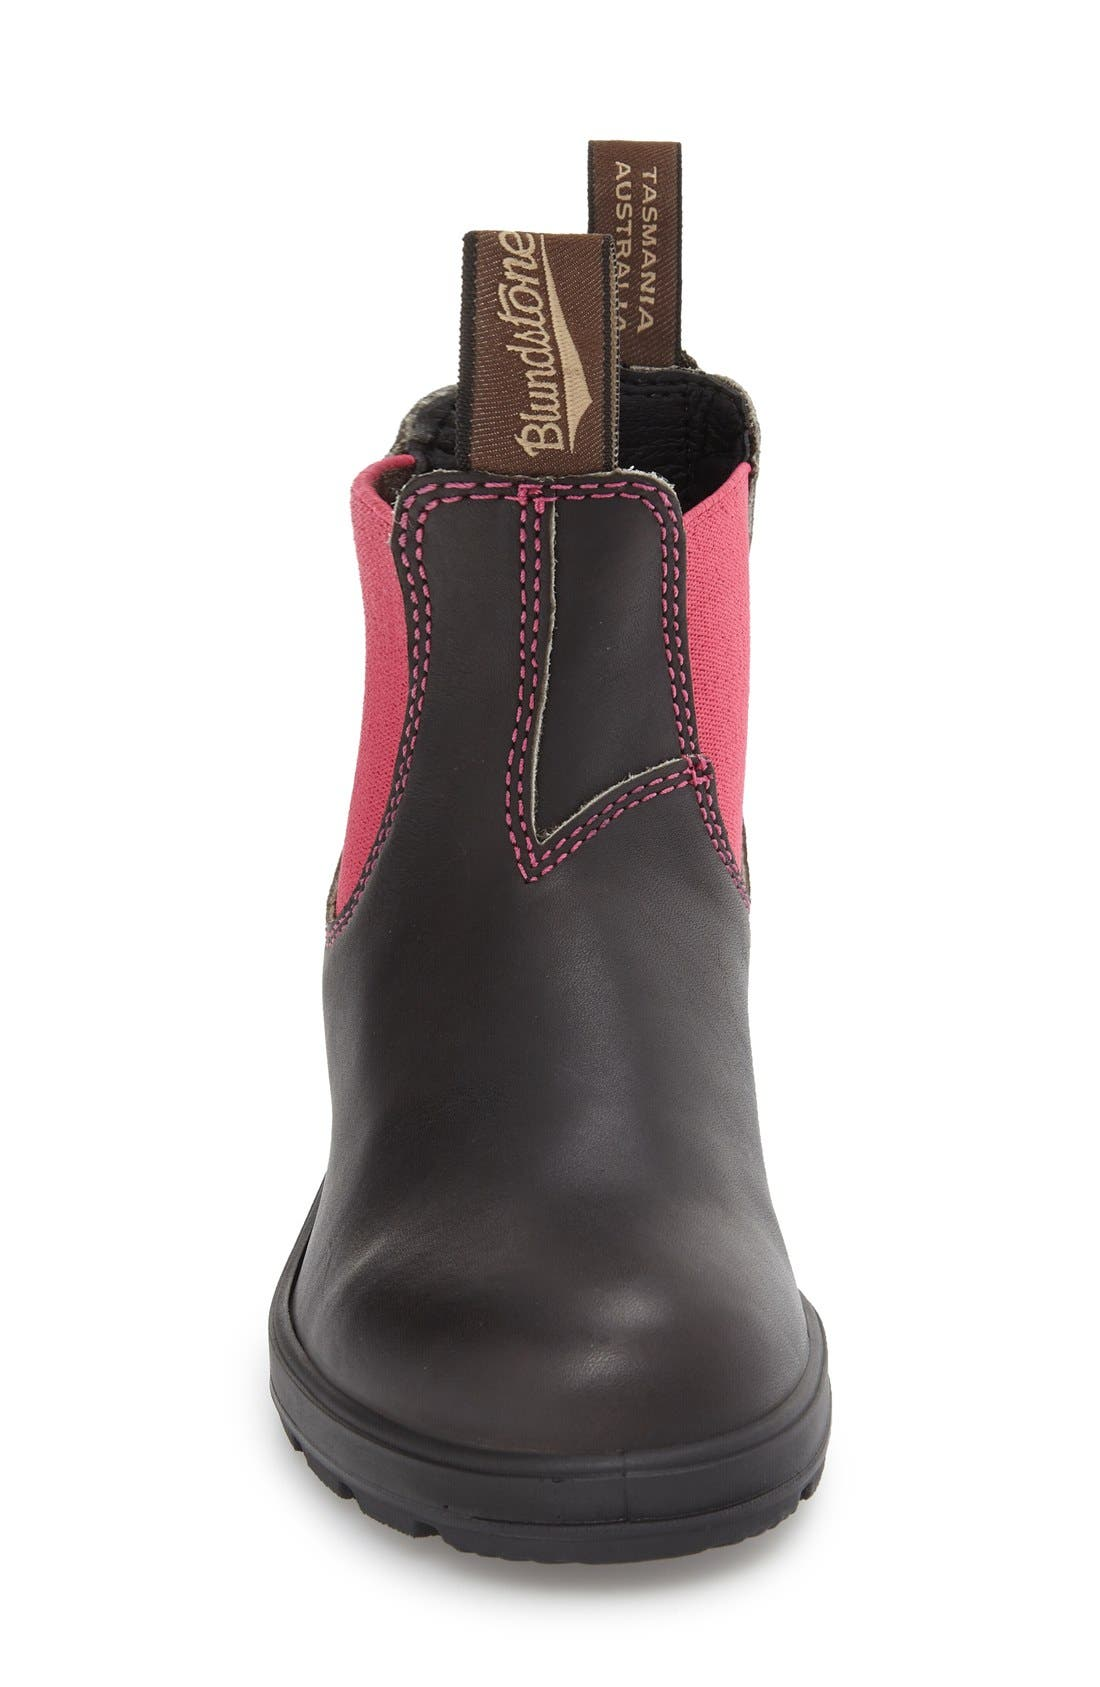 Footwear 'Original - 500 Series' Water Resistant Chelsea Boot,                             Alternate thumbnail 3, color,                             Stout Brown/ Pink Leather